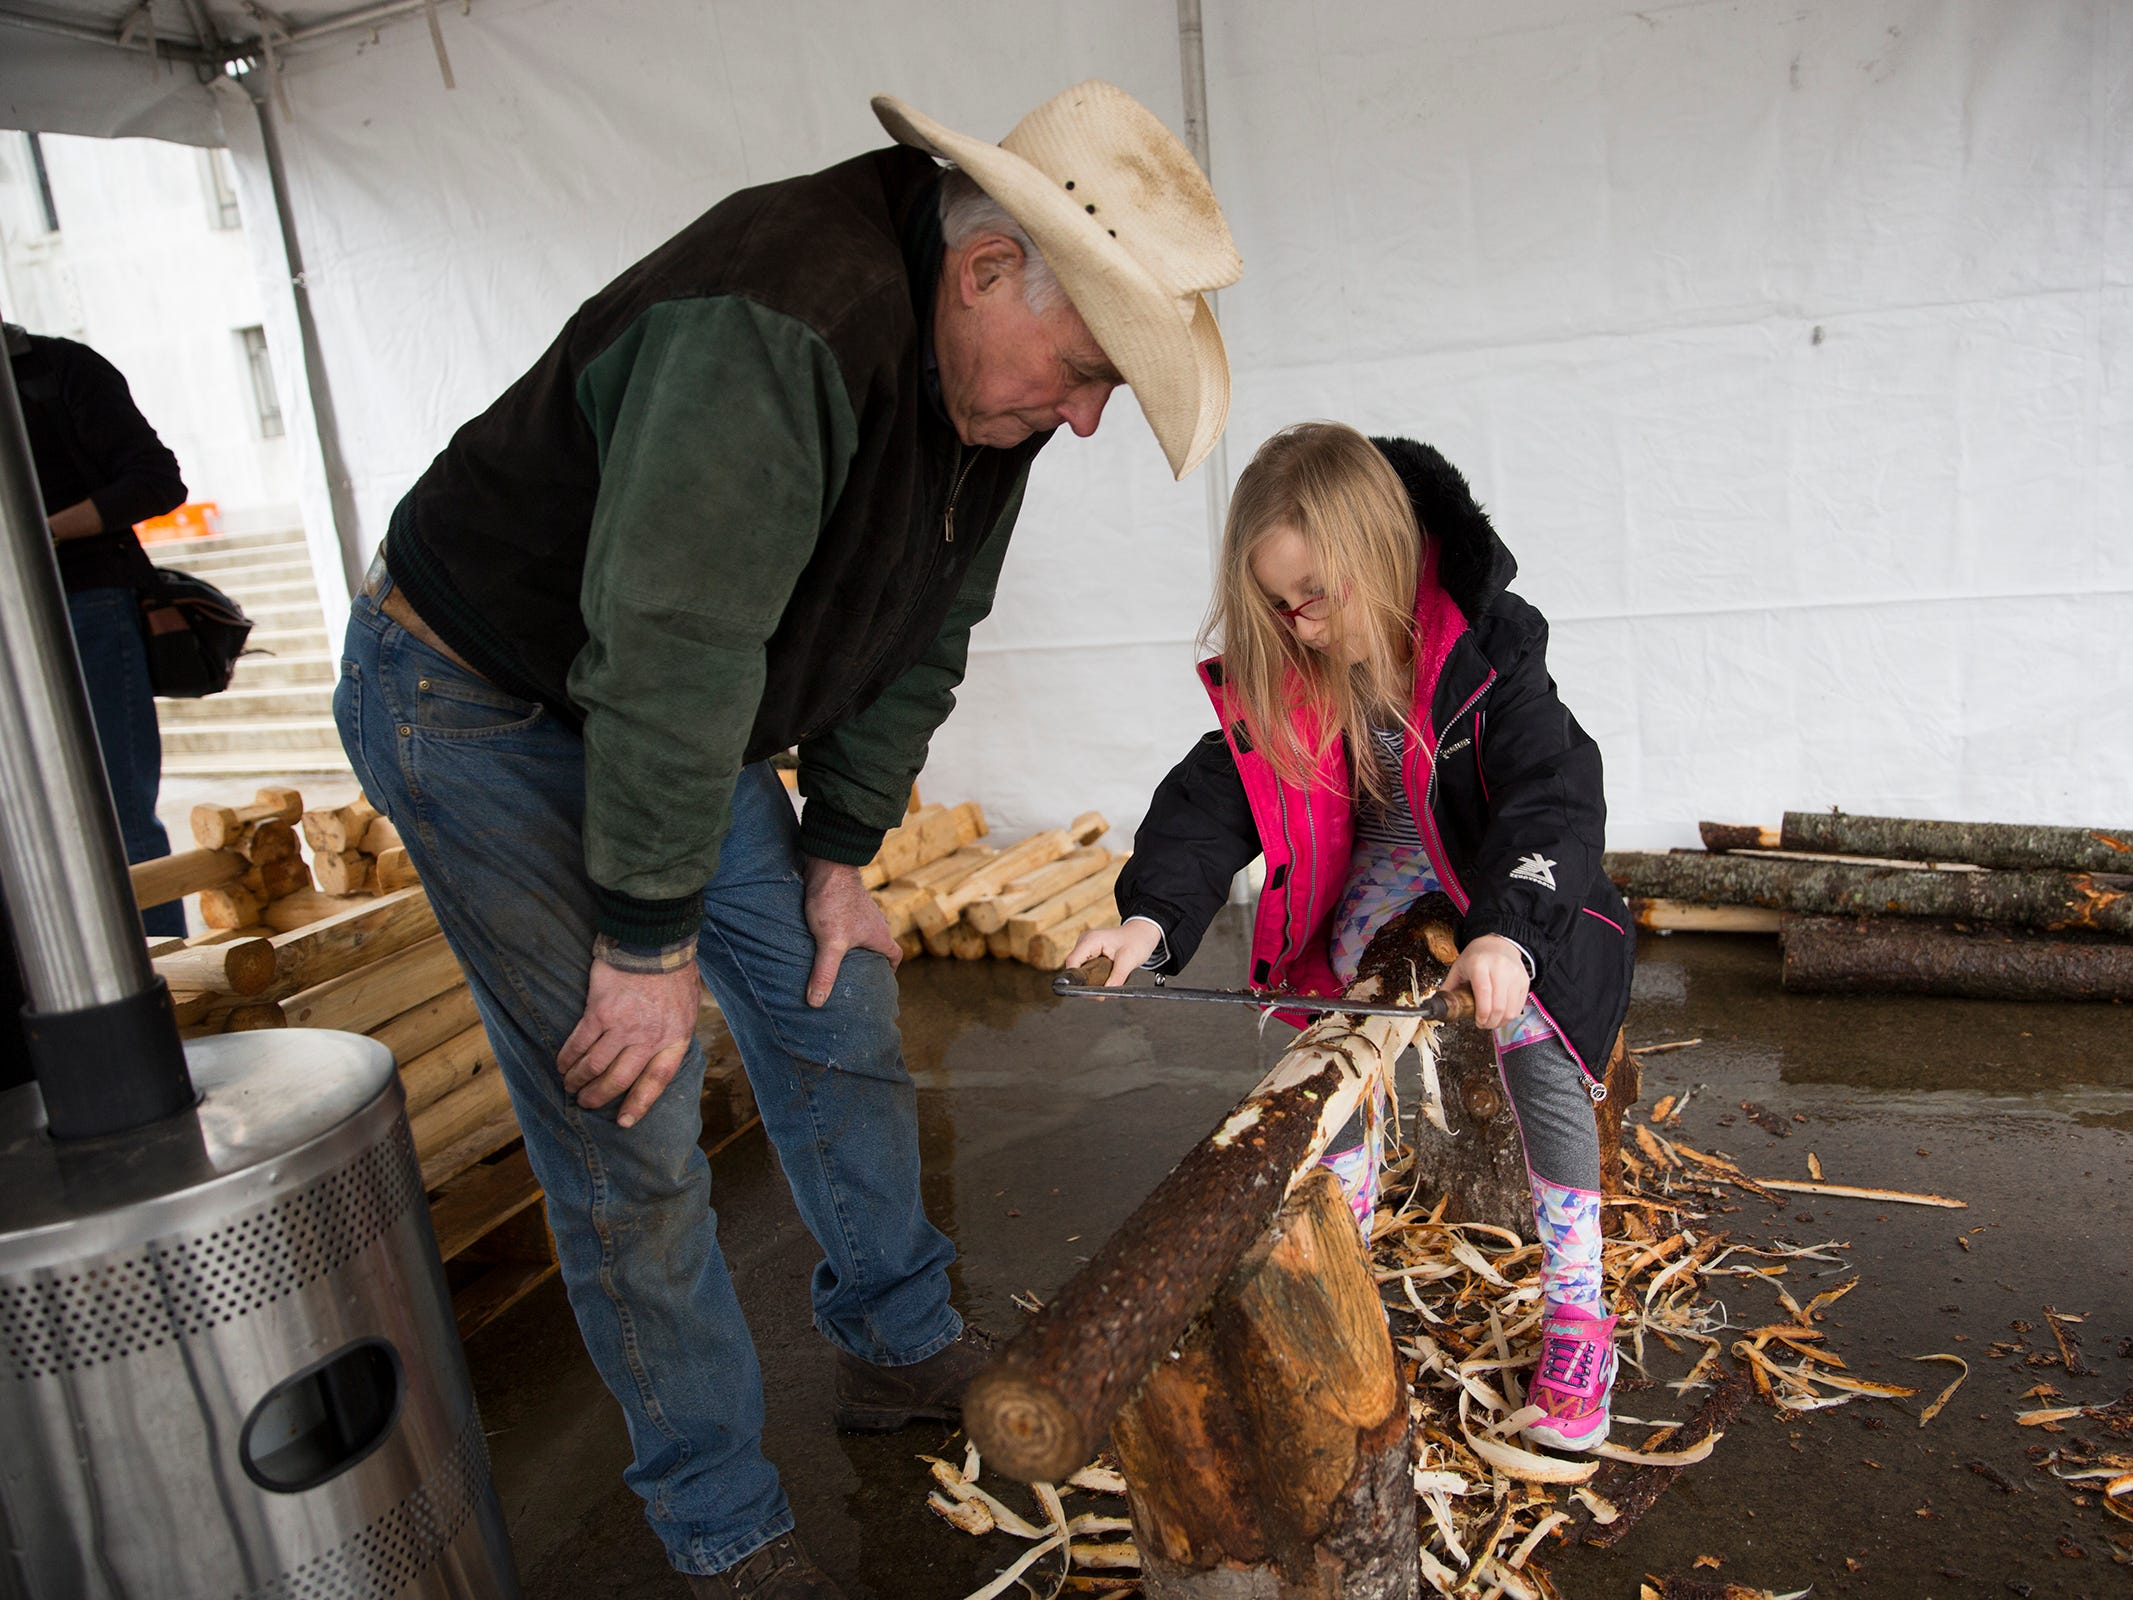 Gonn Callaham helps Eva Wolff, 7, learn to carve wood during Oregon's 160th Birthday Celebration at the Oregon State Capitol in Salem on Saturday, Feb. 16, 2019.